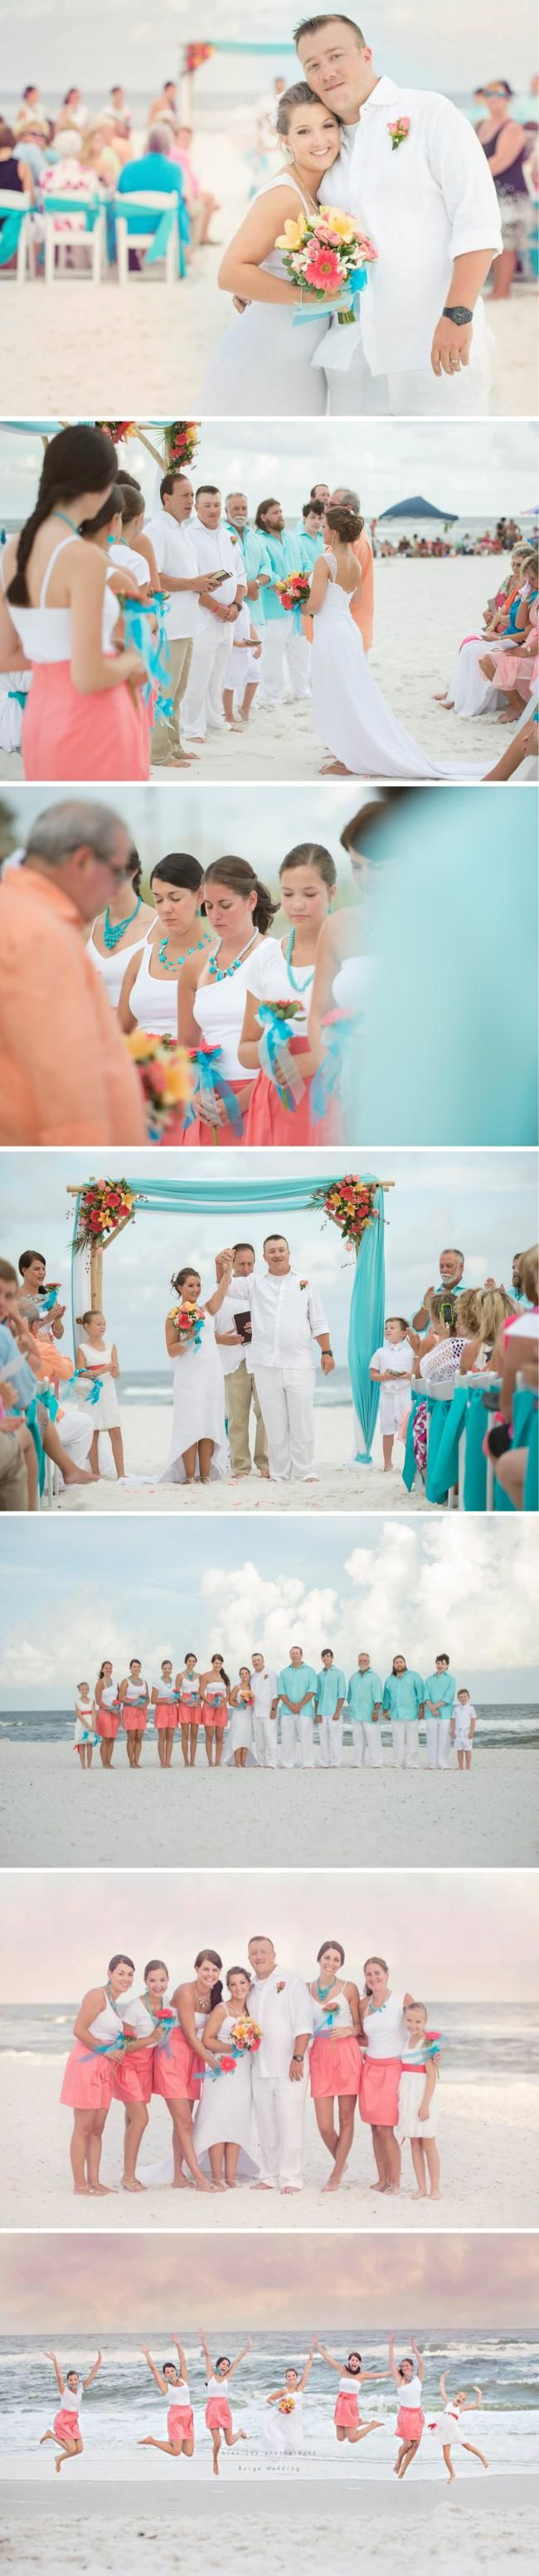 Coral bridesmaid skirts with turquoise necklaces by Frill Clothing! Frillclothing.com